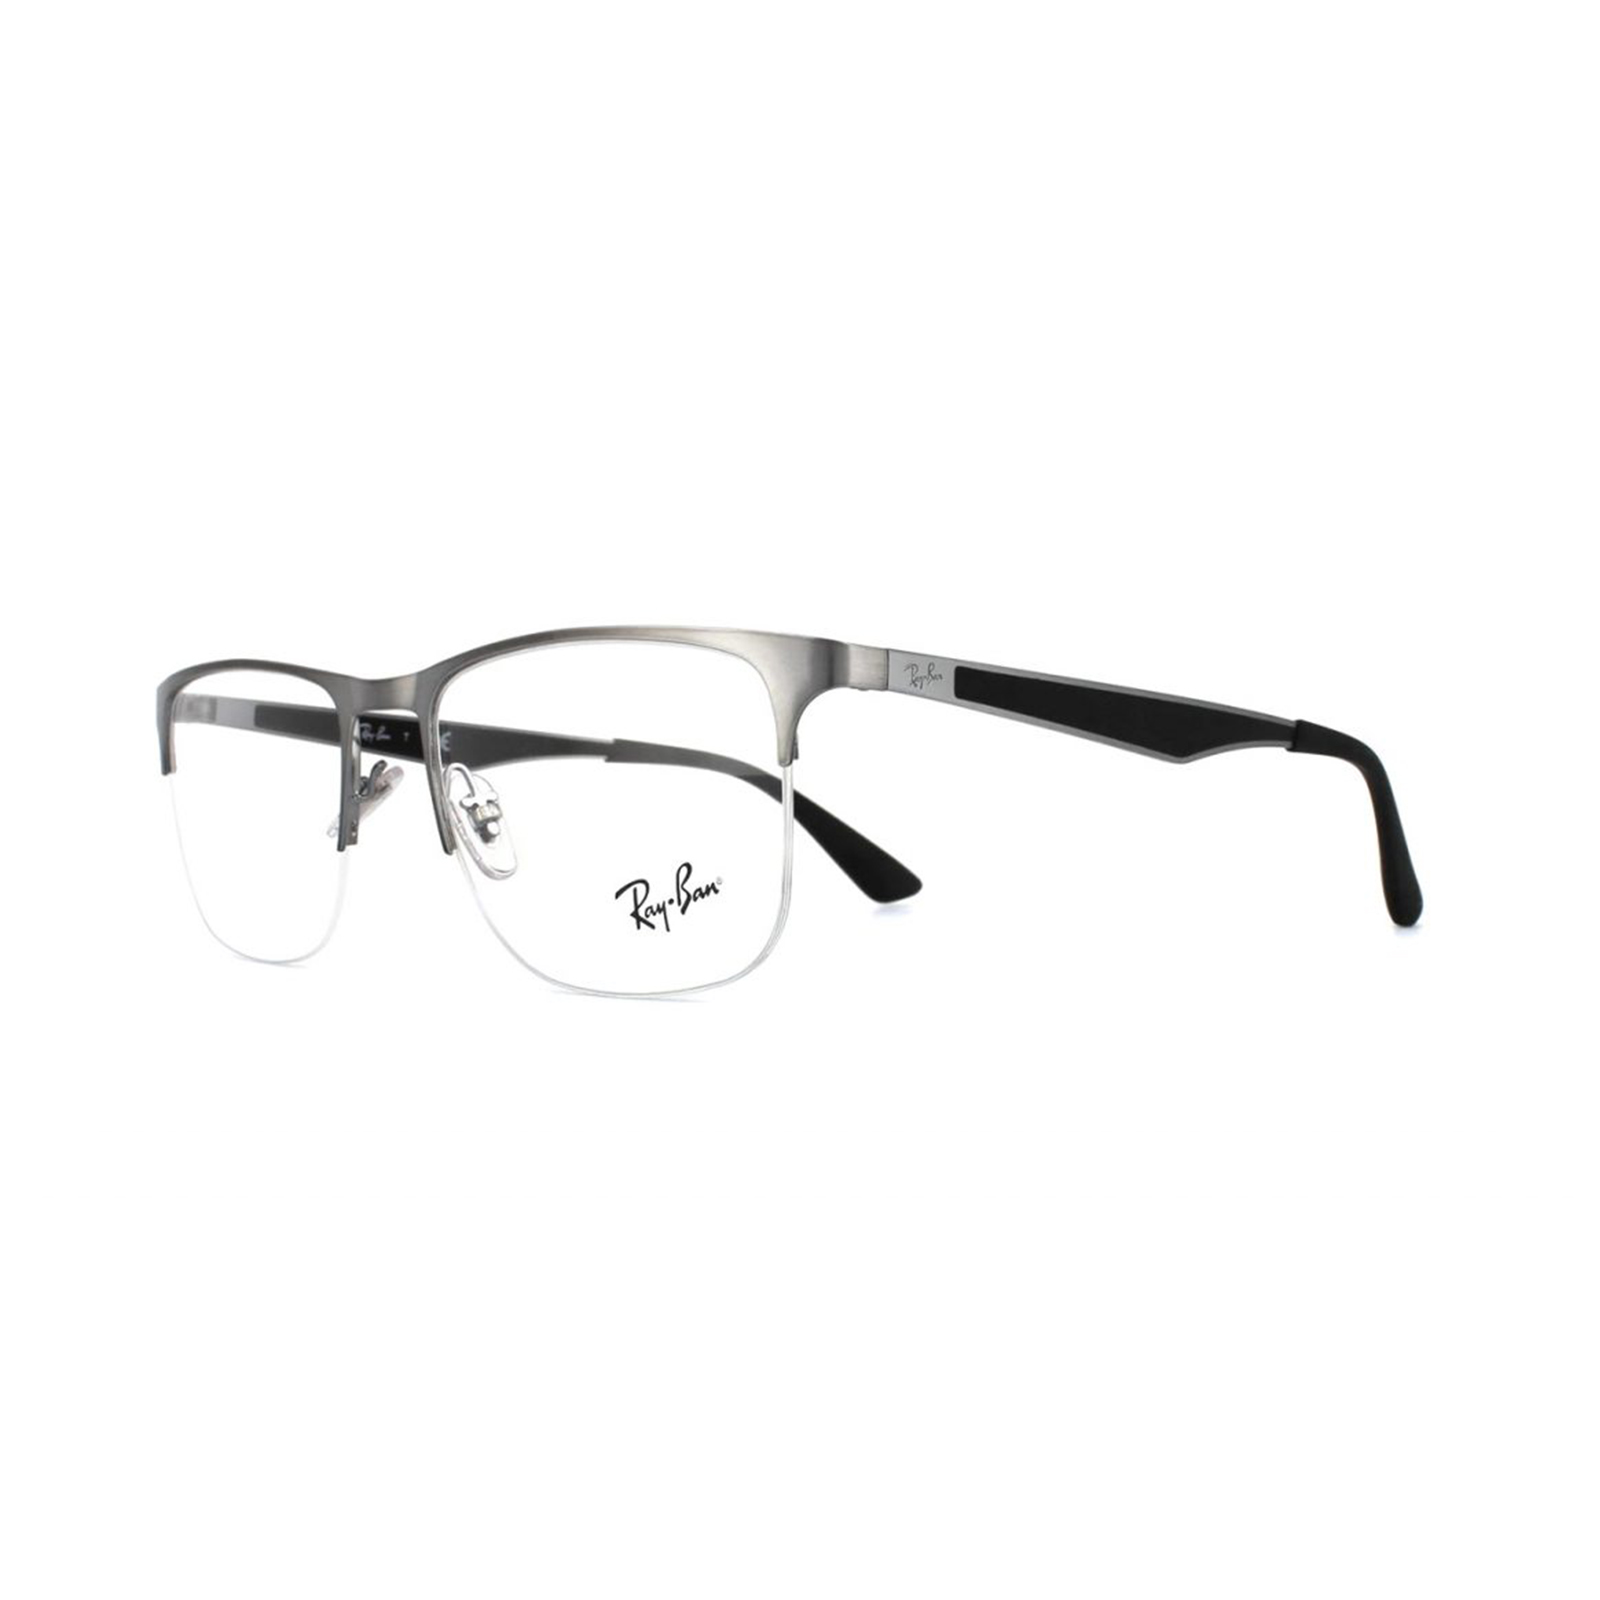 90b4e23de42 Details about Ray-Ban Glasses Frames RX 6362 2502 Shiny Gunmetal Mens 55mm